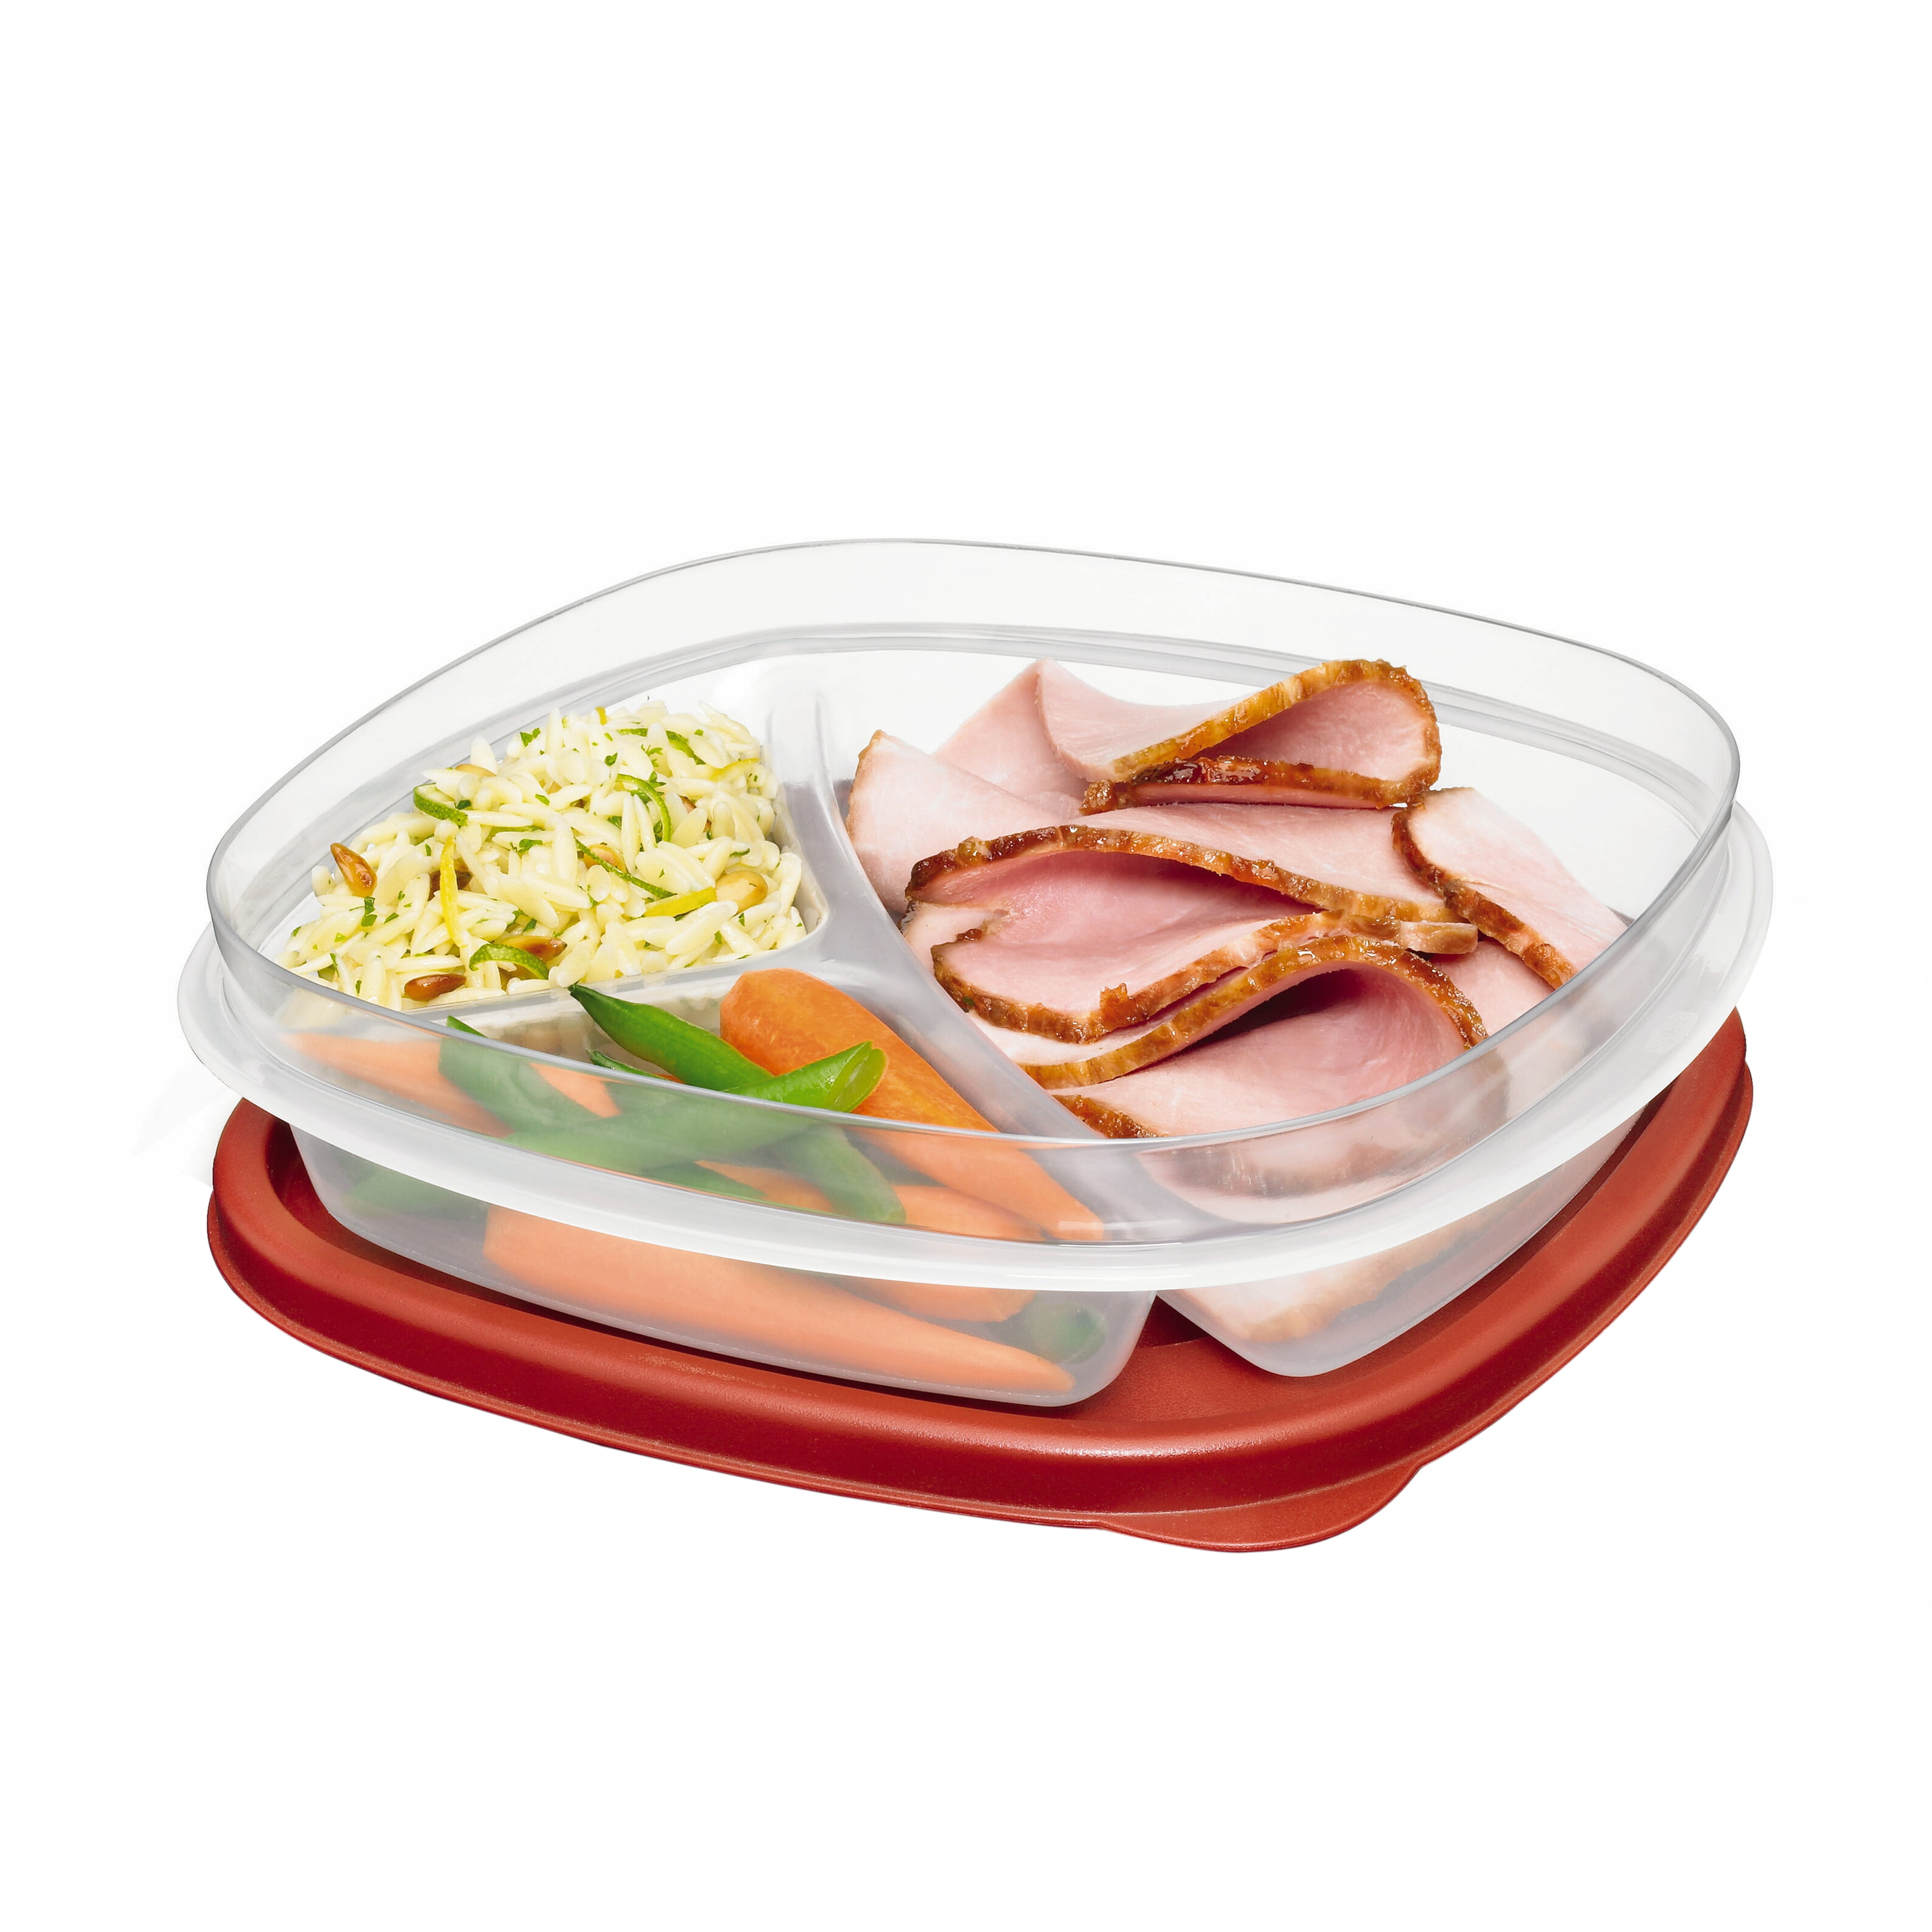 Rubbermaid Easy Find Lids Food Storage Container, 4.8 Cup